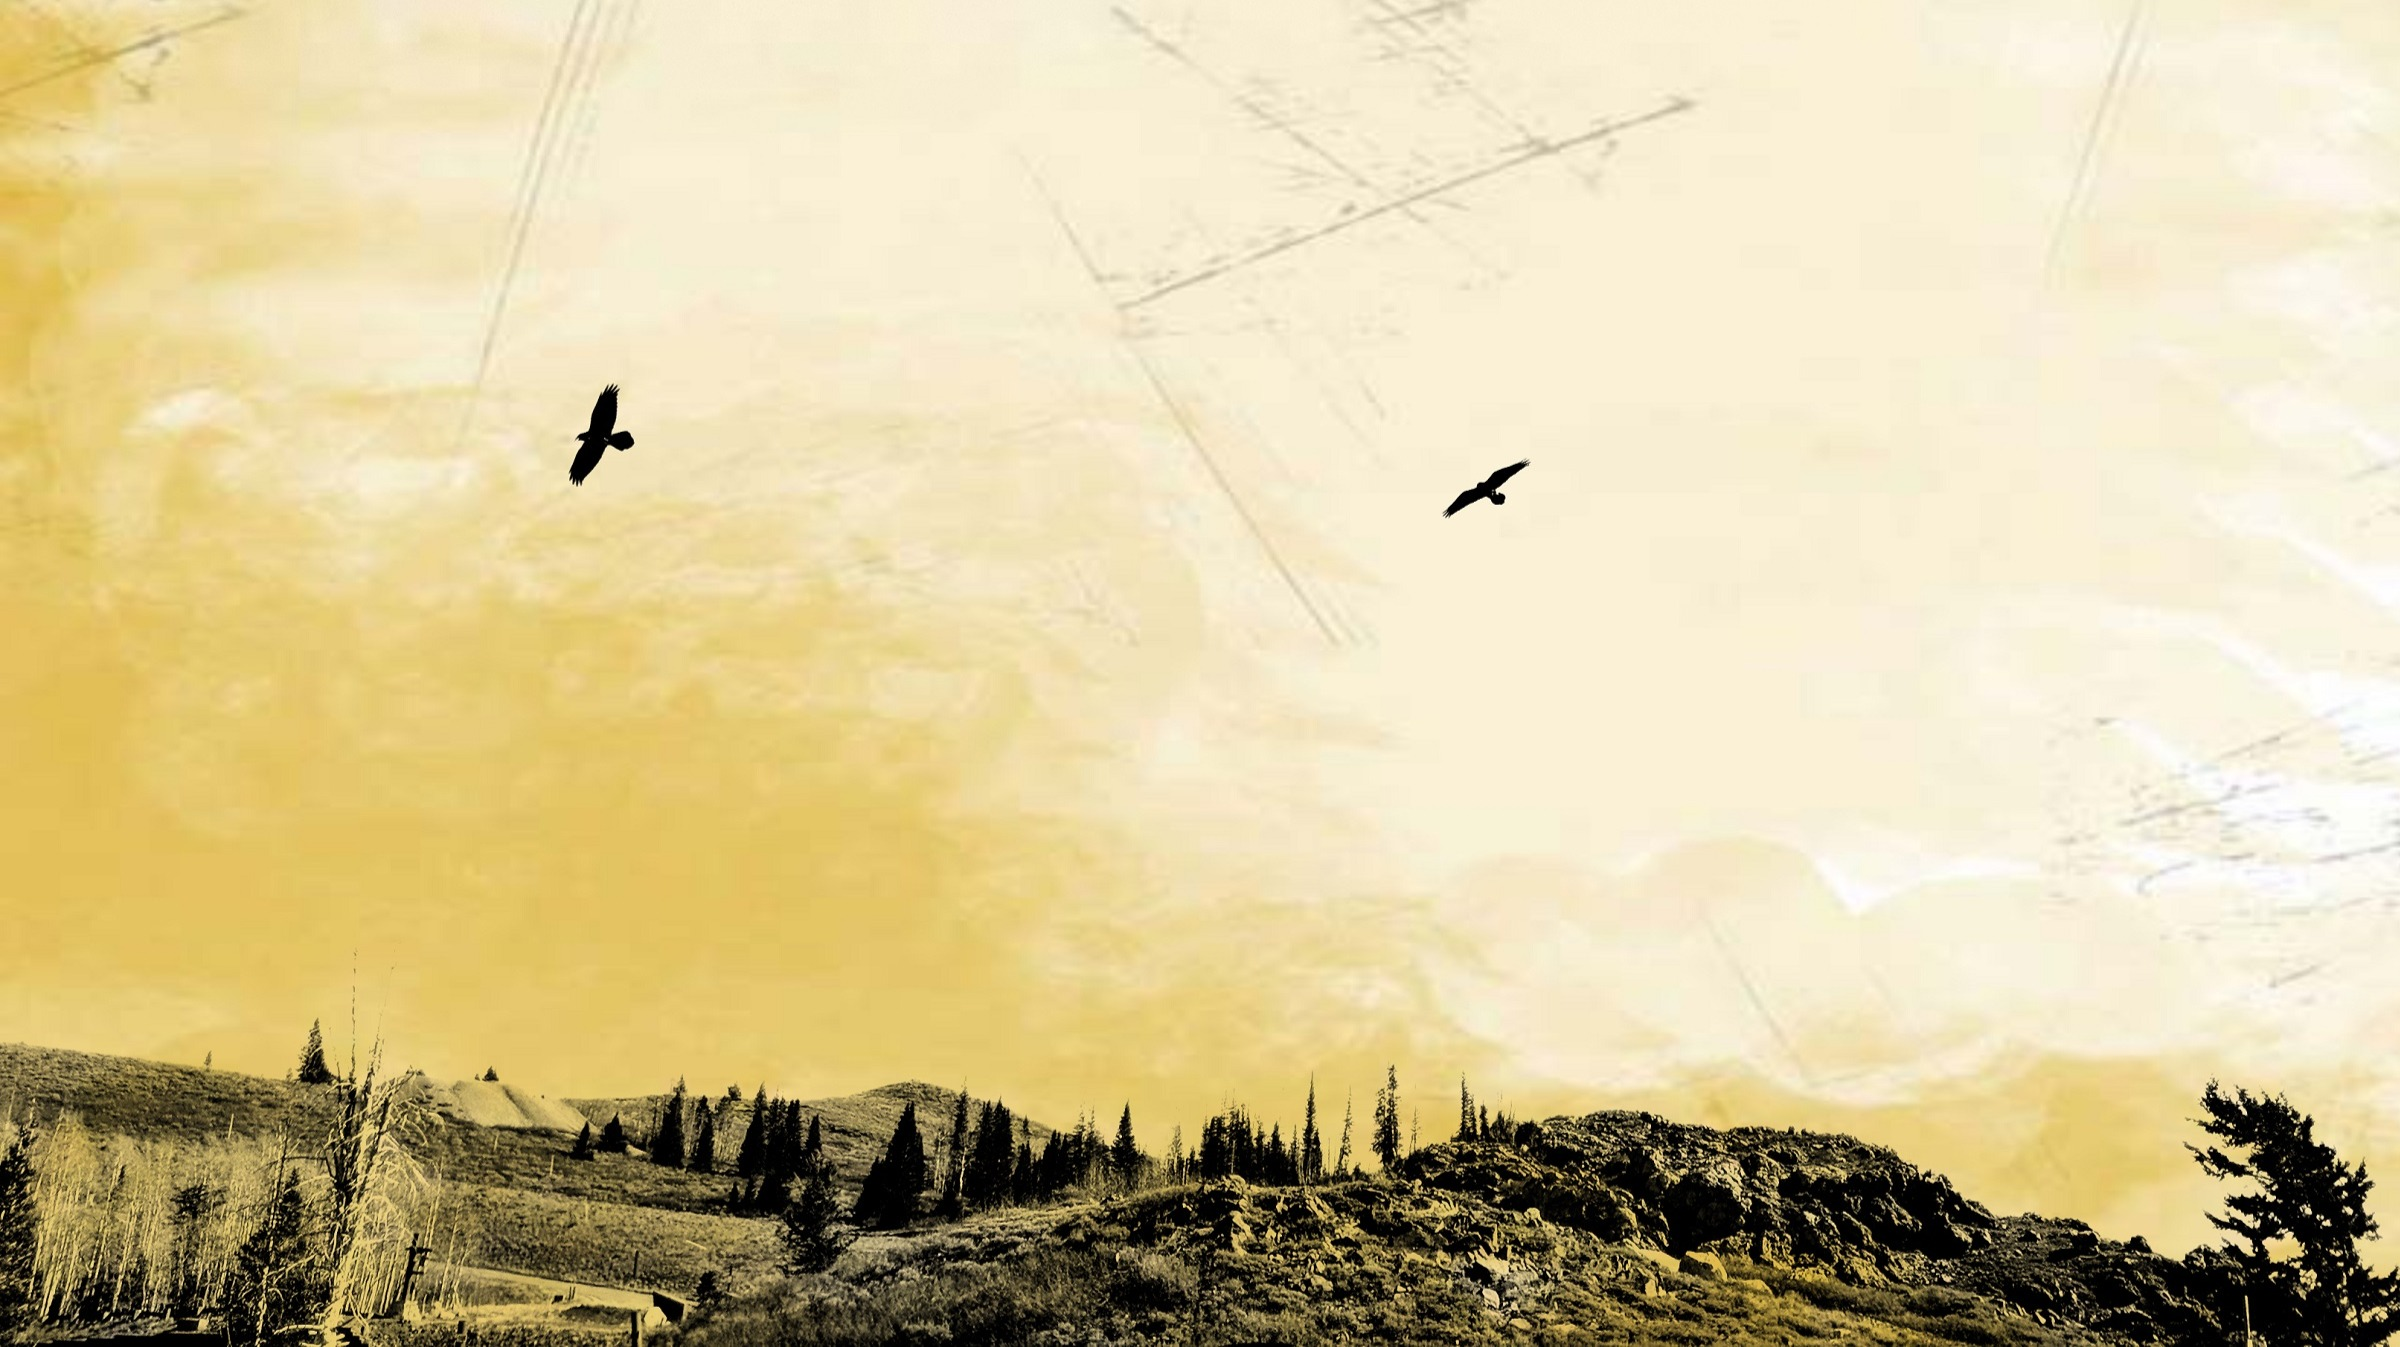 Mountains, Sky, Birds